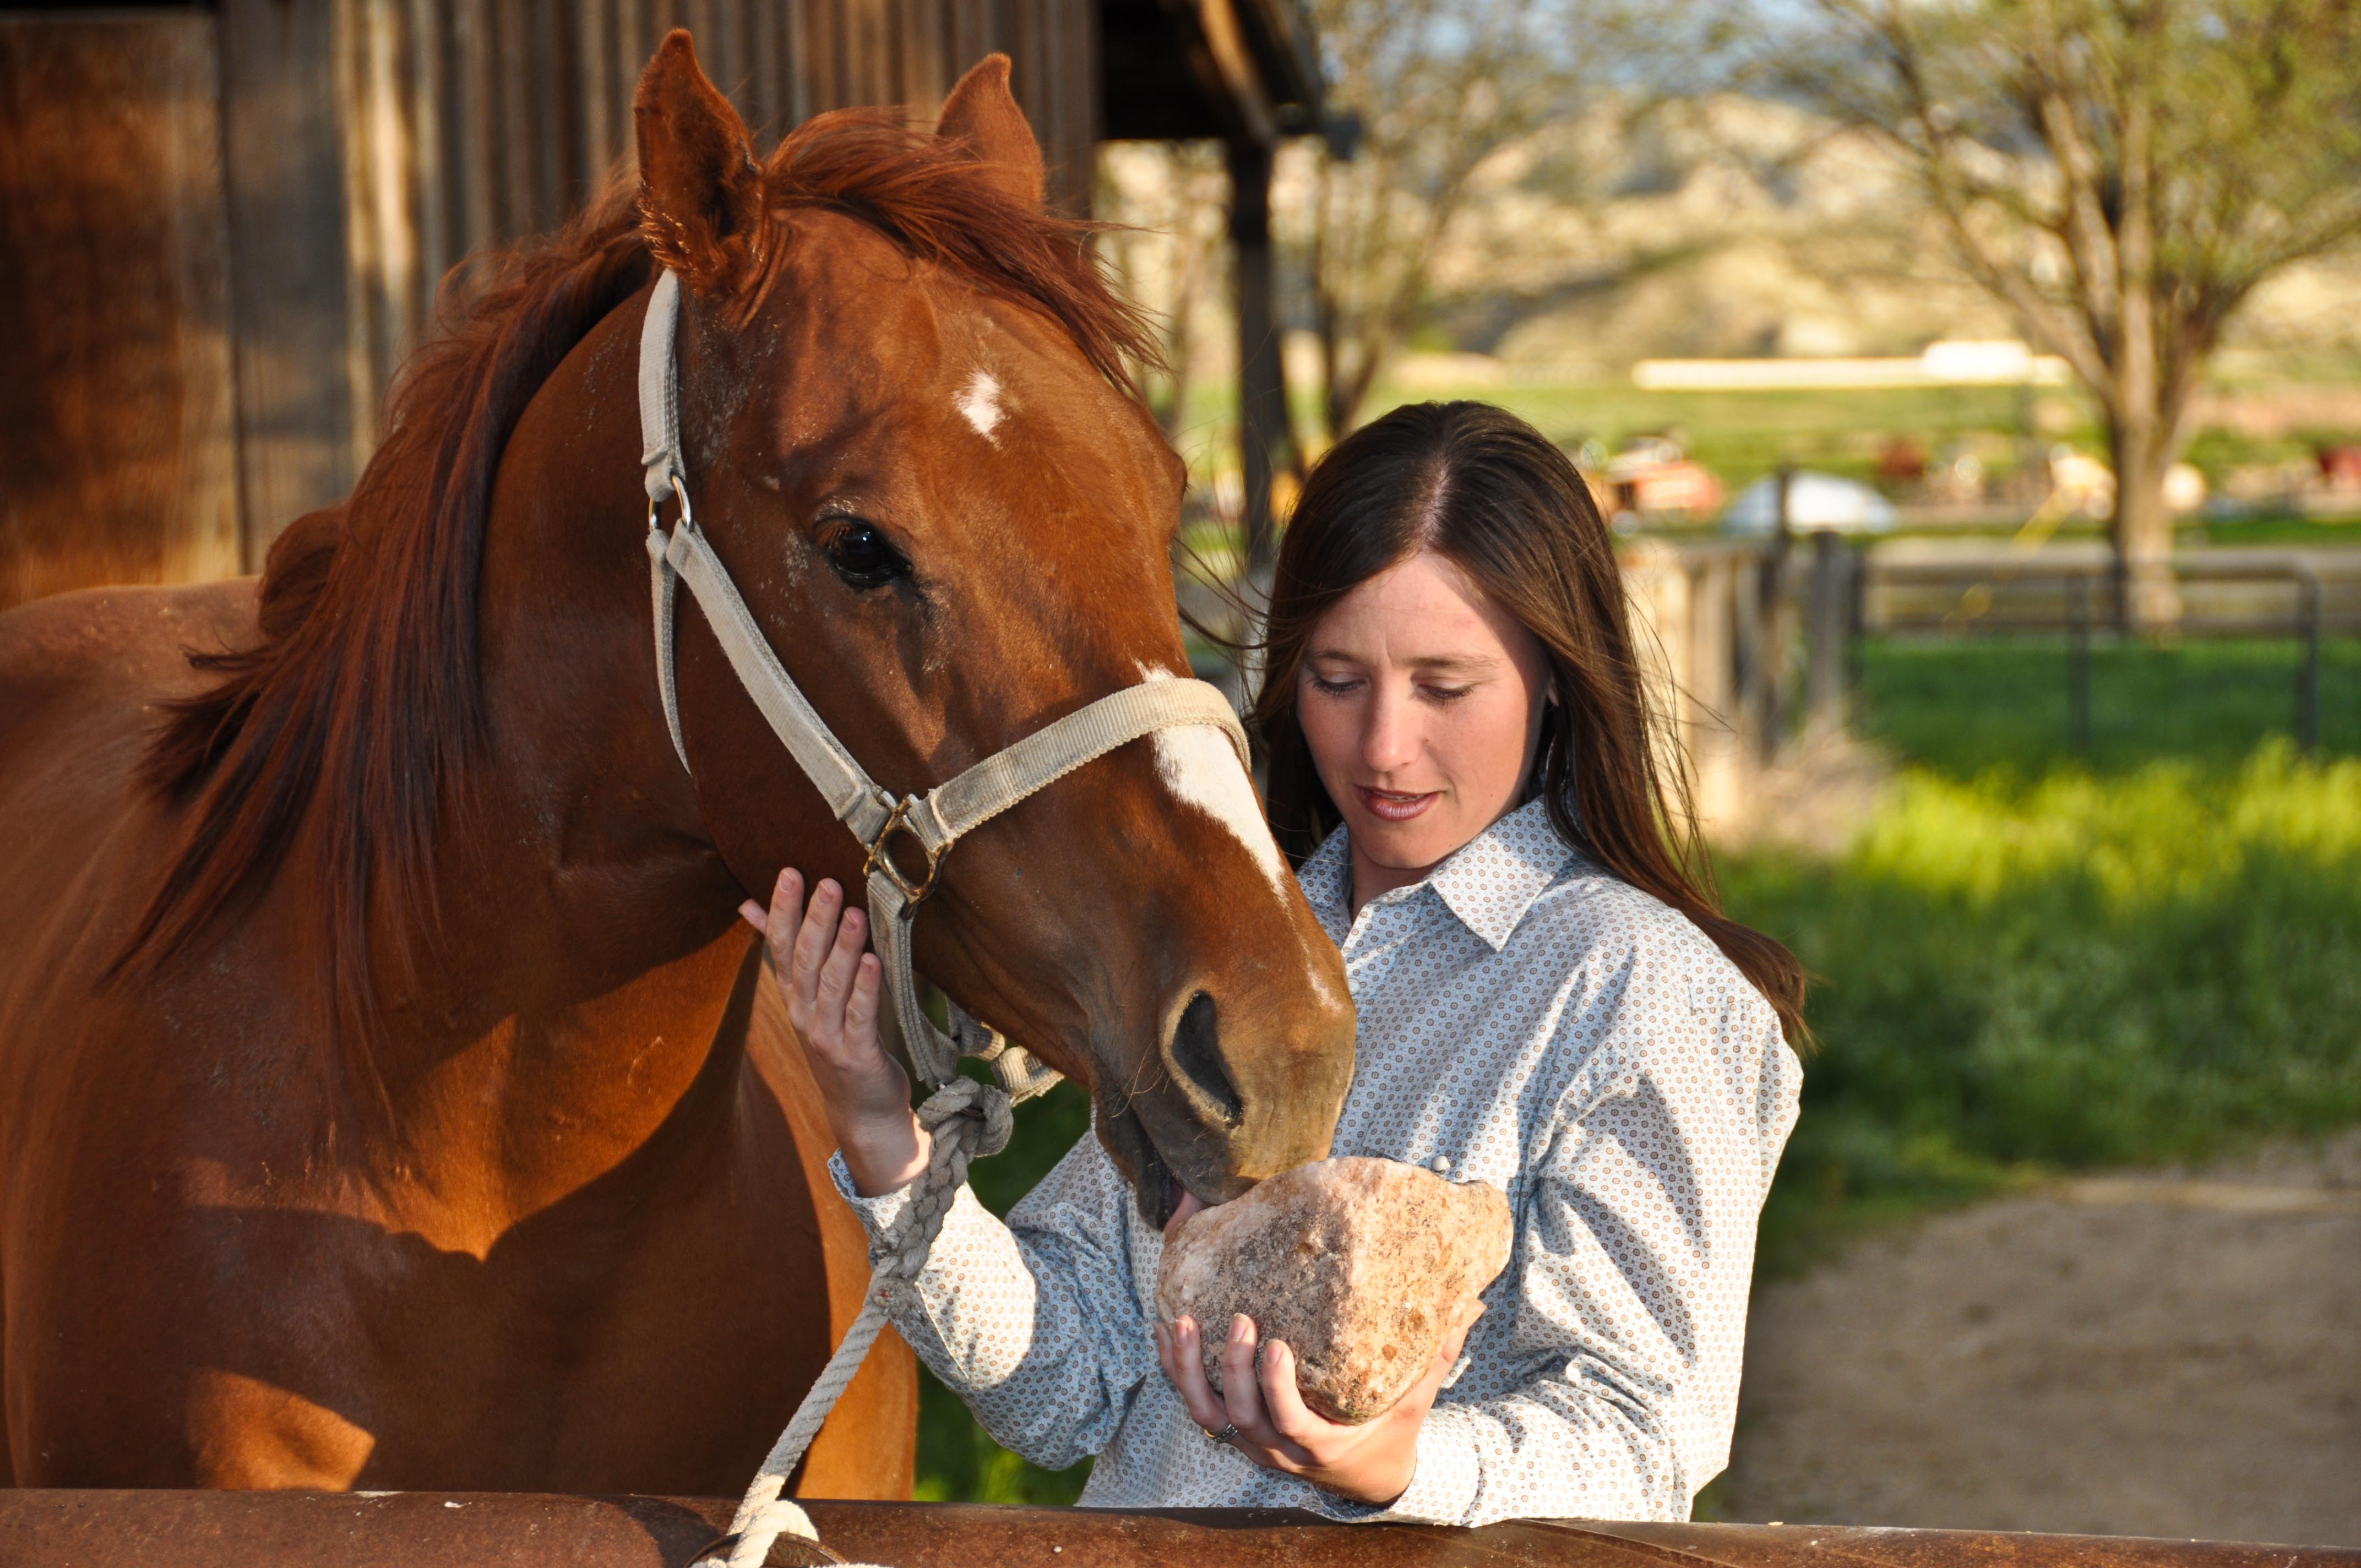 Iron for Horses: How Much is Too Much?